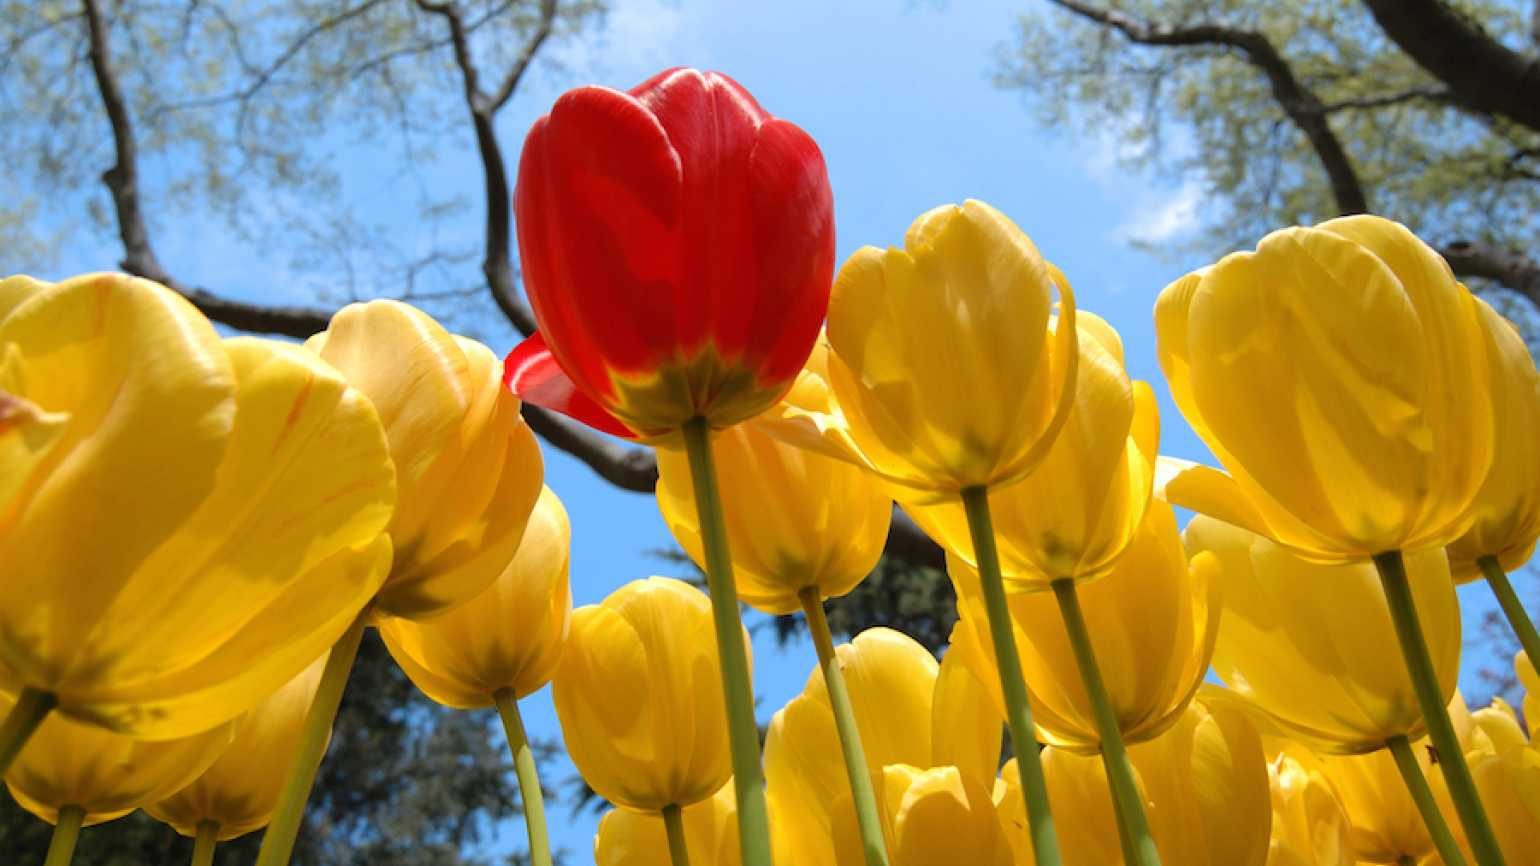 An inspiring red tulip stands tall in a field of yellow tulips.